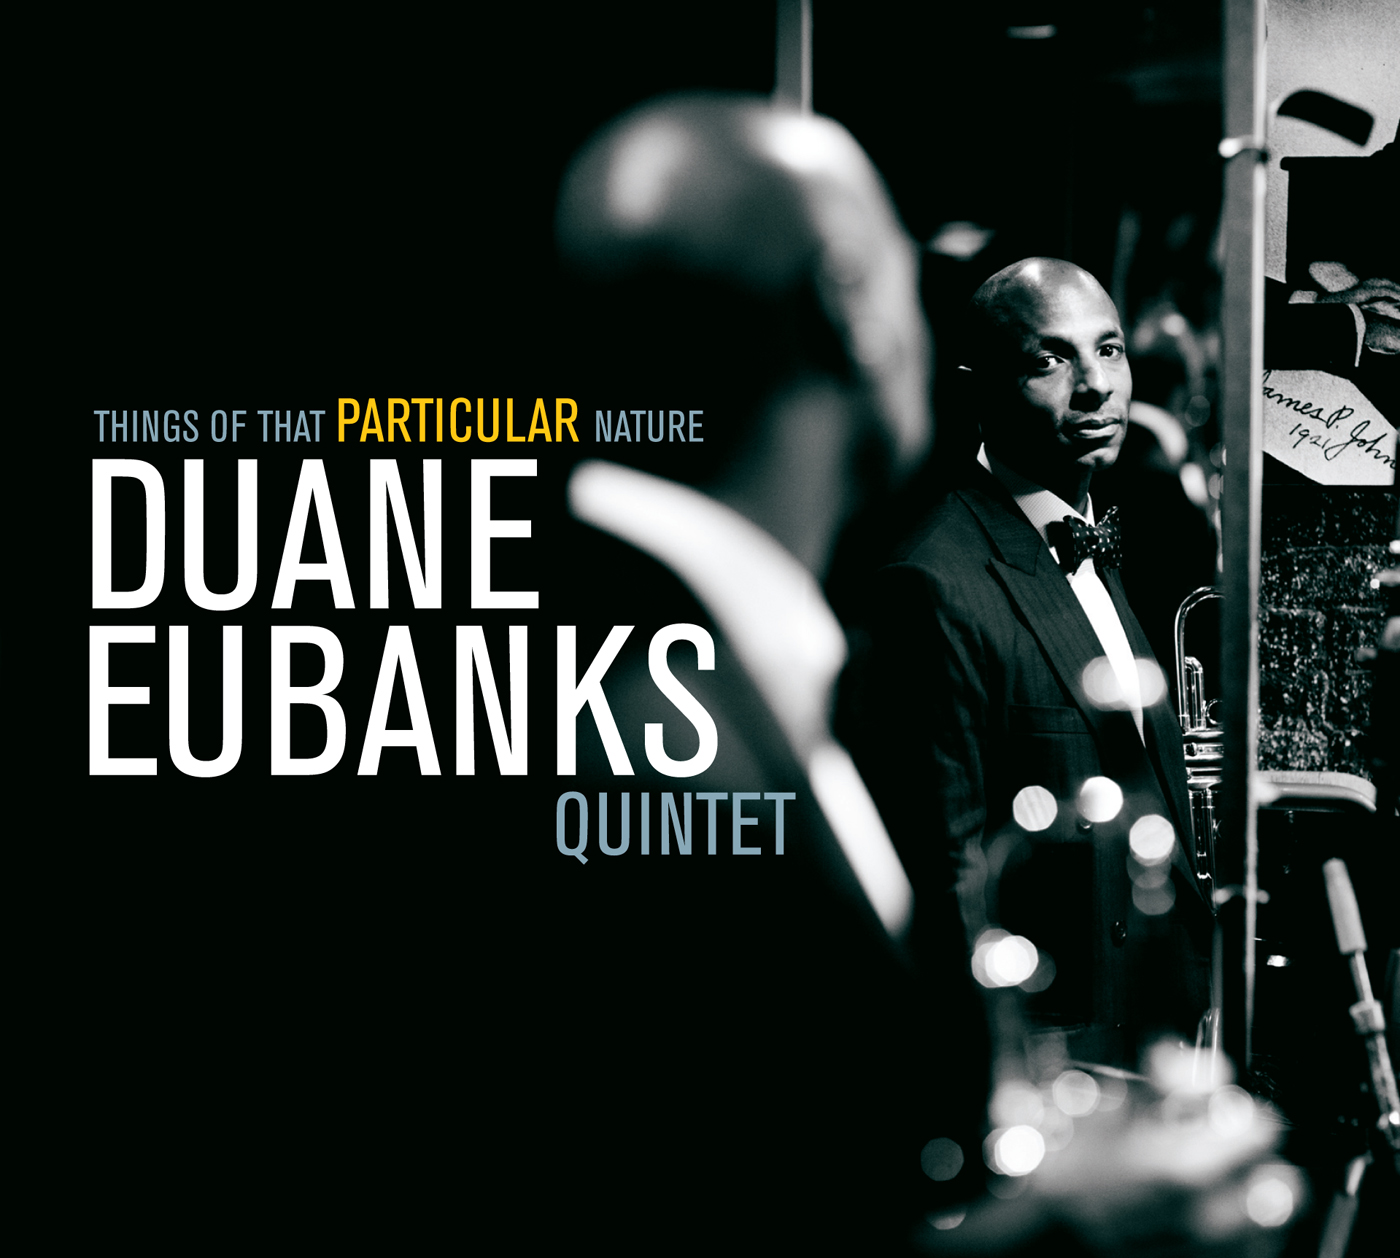 Things Of That Particular Nature  by Duane  Eubanks cover